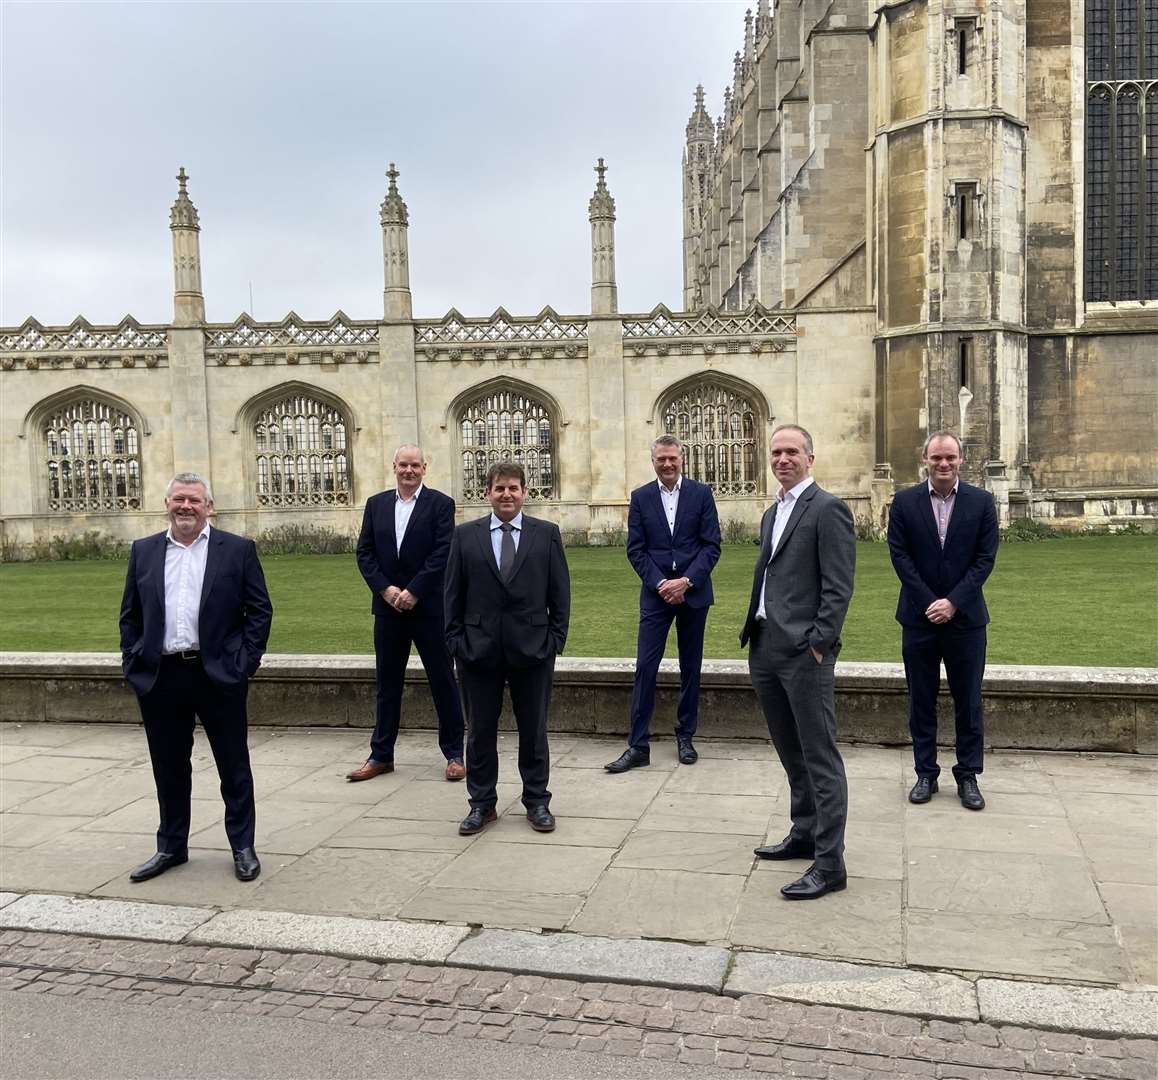 The COEL management team, from left, group CEO Alistair Rumbelow, group operations director Jerry Overhill, group MEP director Dean Powell, group director Neil Cook, group sales and marketing director Barnaby Clark and group FD David Williams. Picture: COEL